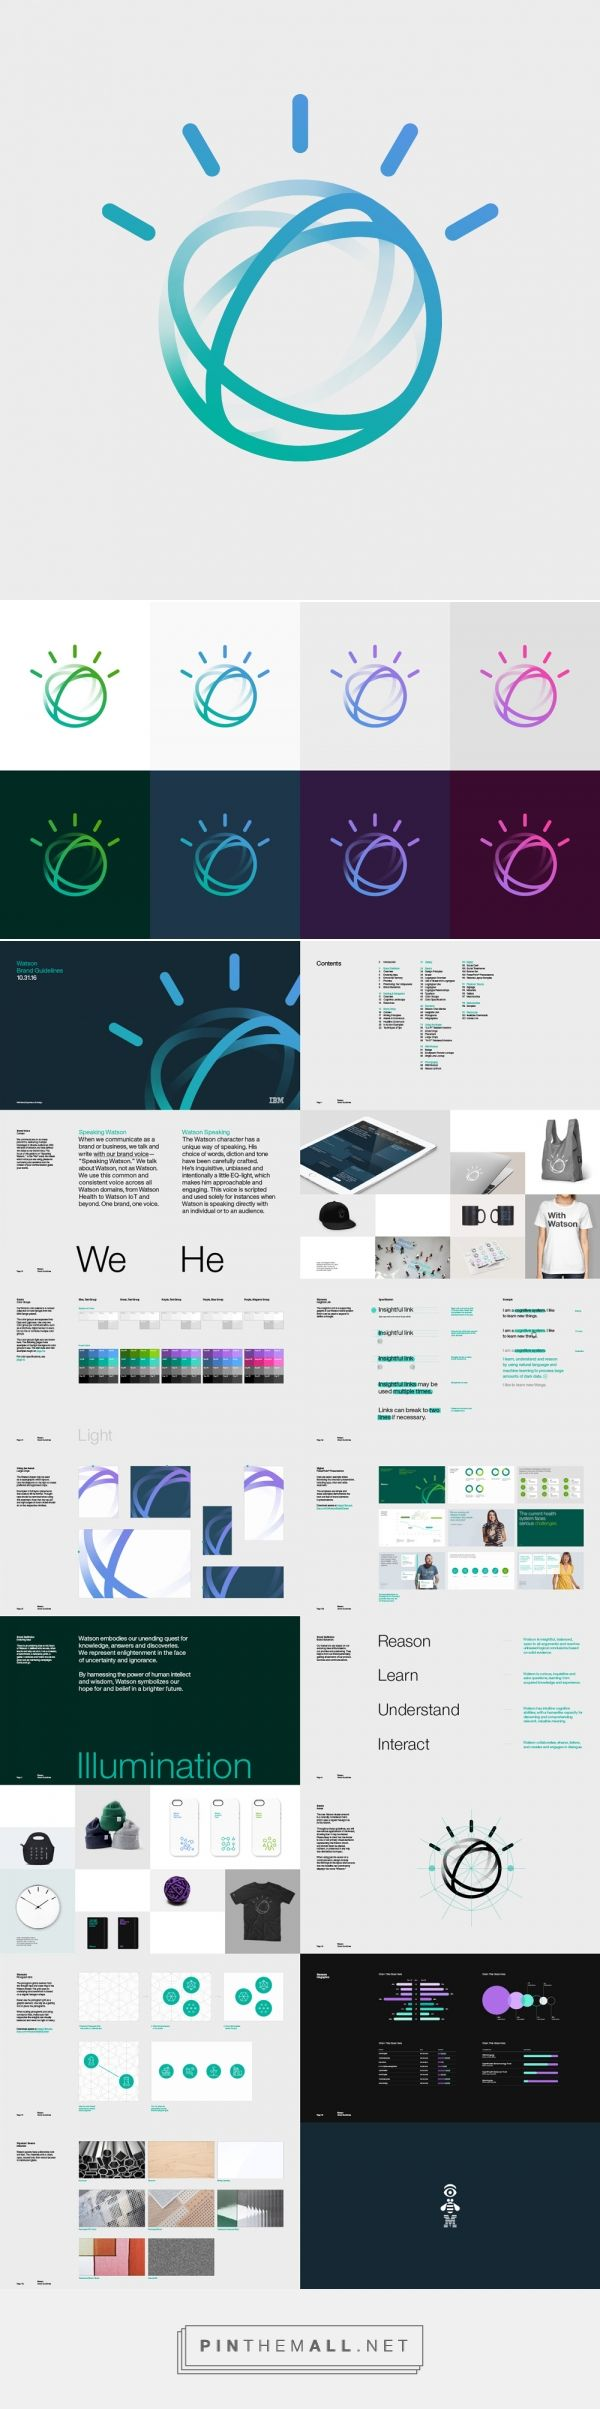 Brand New: New Logo and Identity for IBM Watson done In-house (with others) - created via https://pinthemall.net